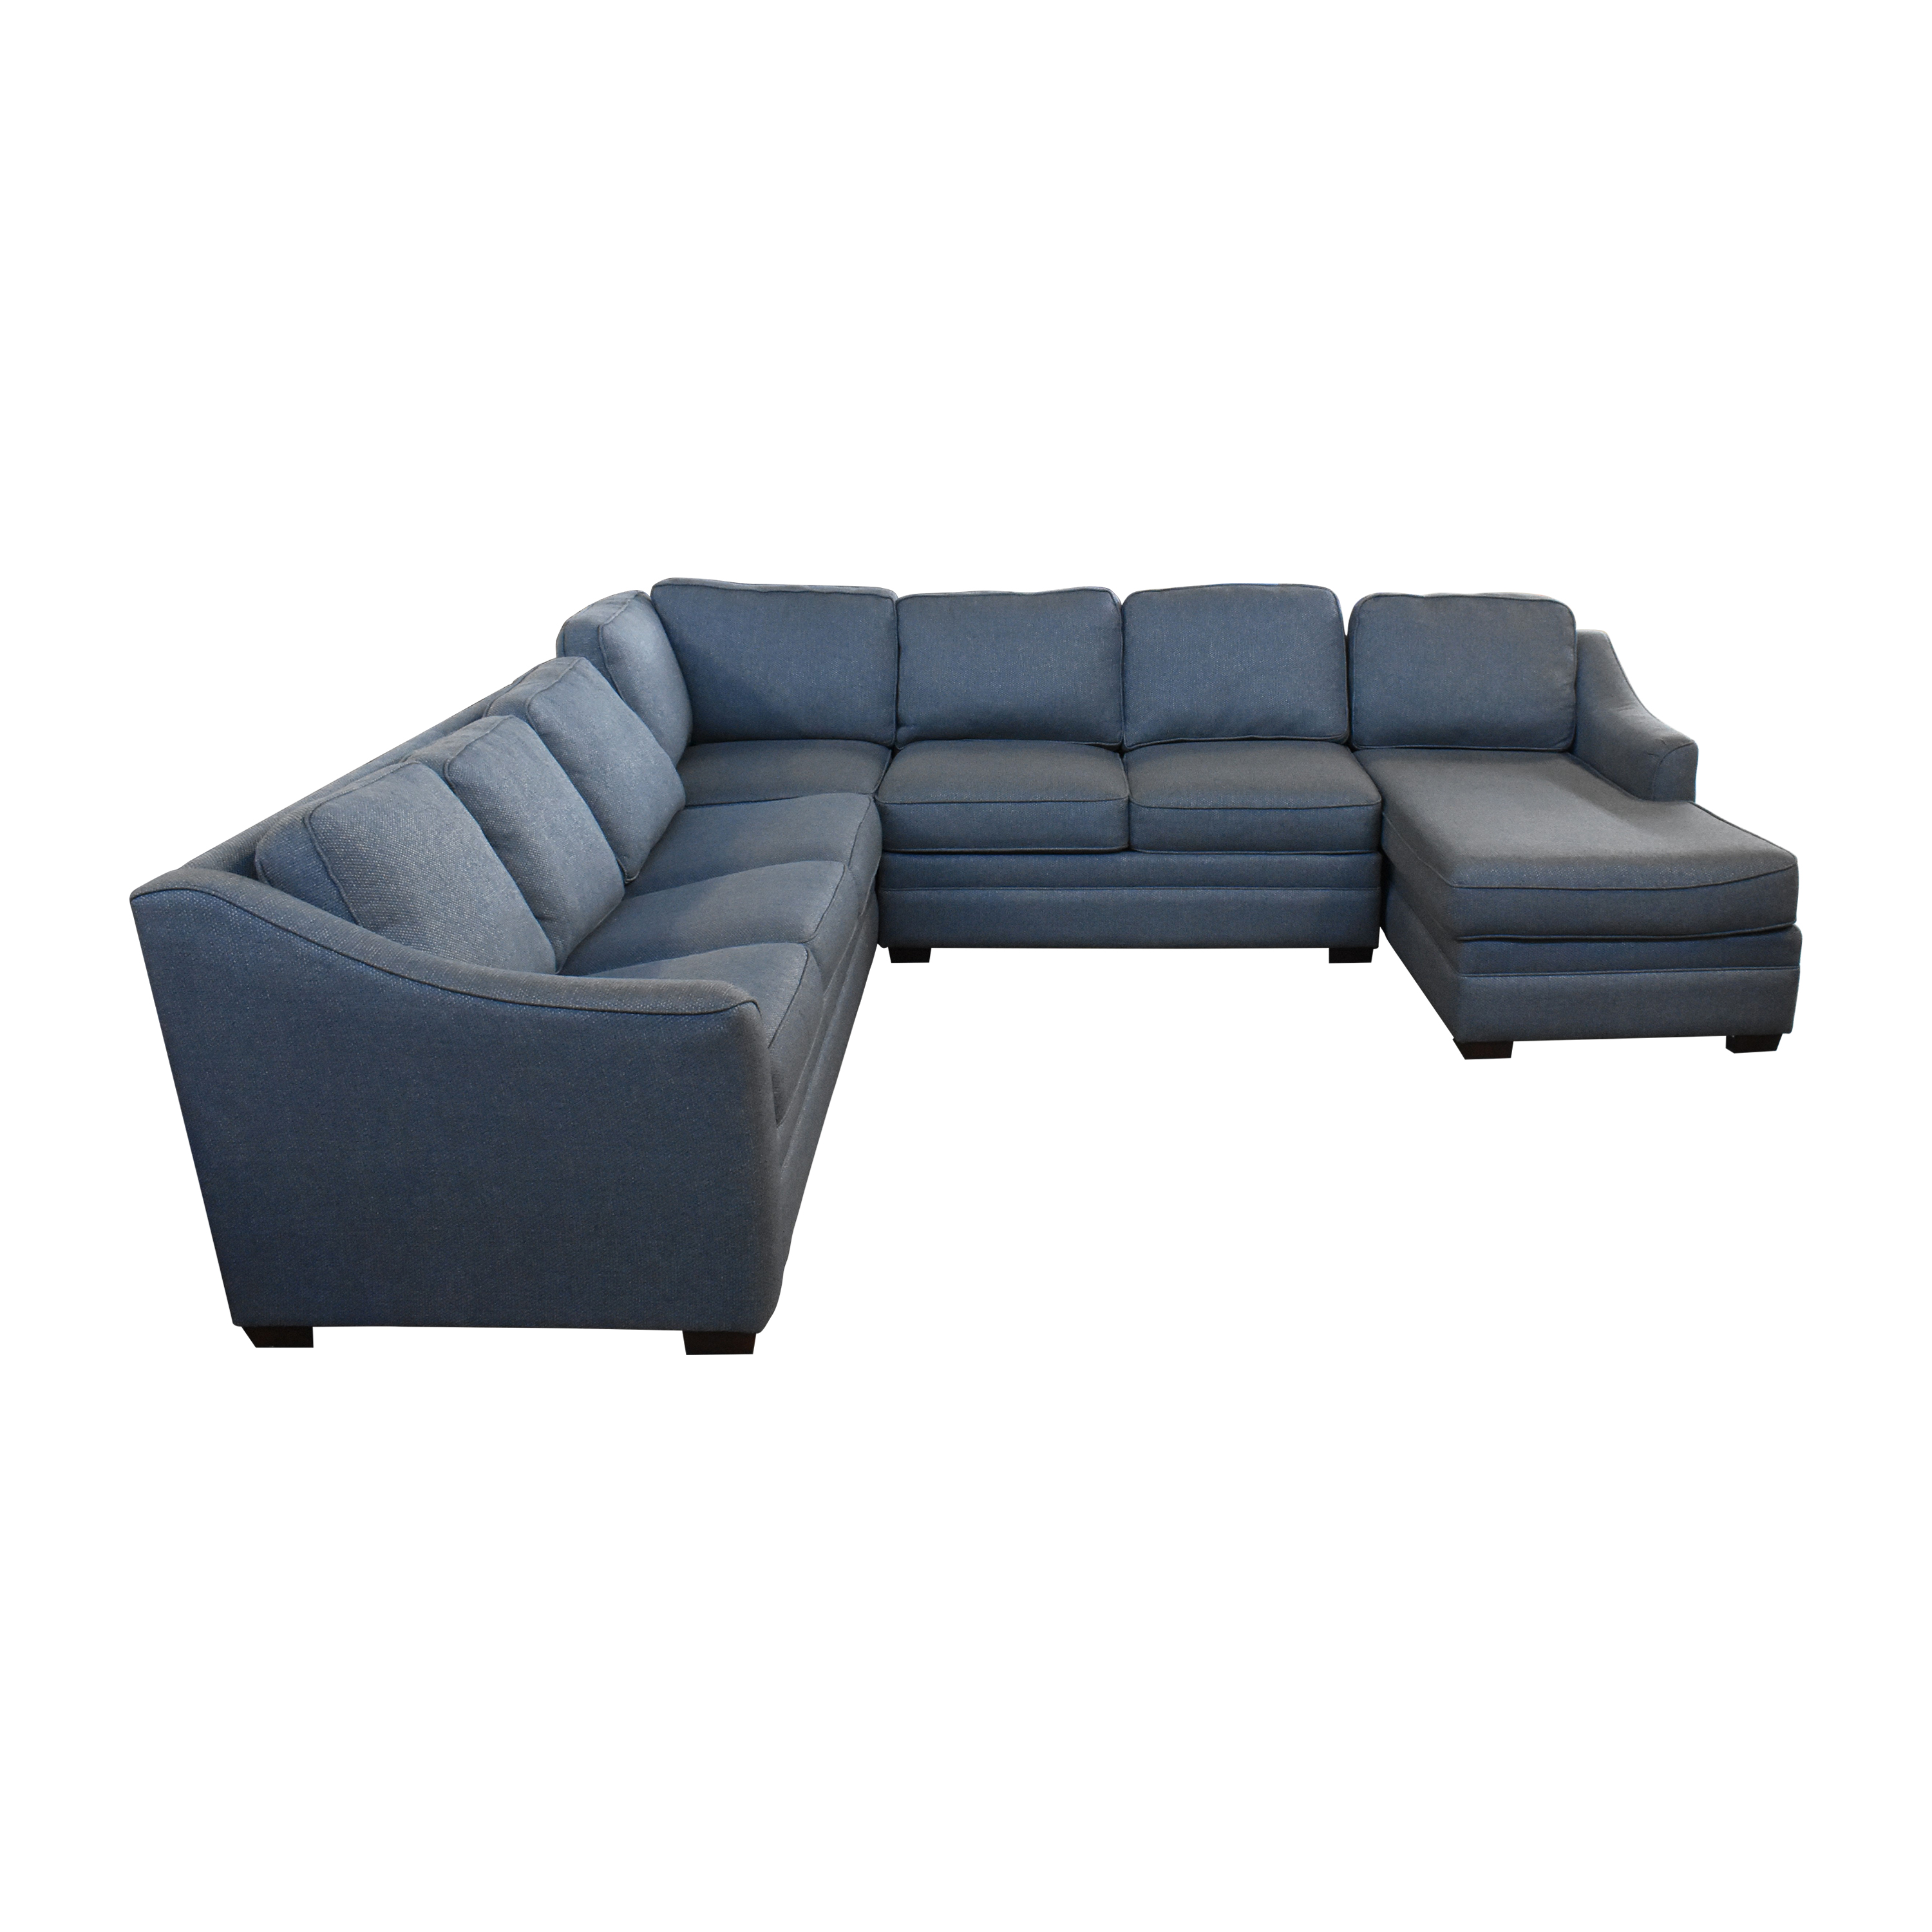 Craftmaster Furniture Craftmaster Furniture Carla Chaise Sectional ma